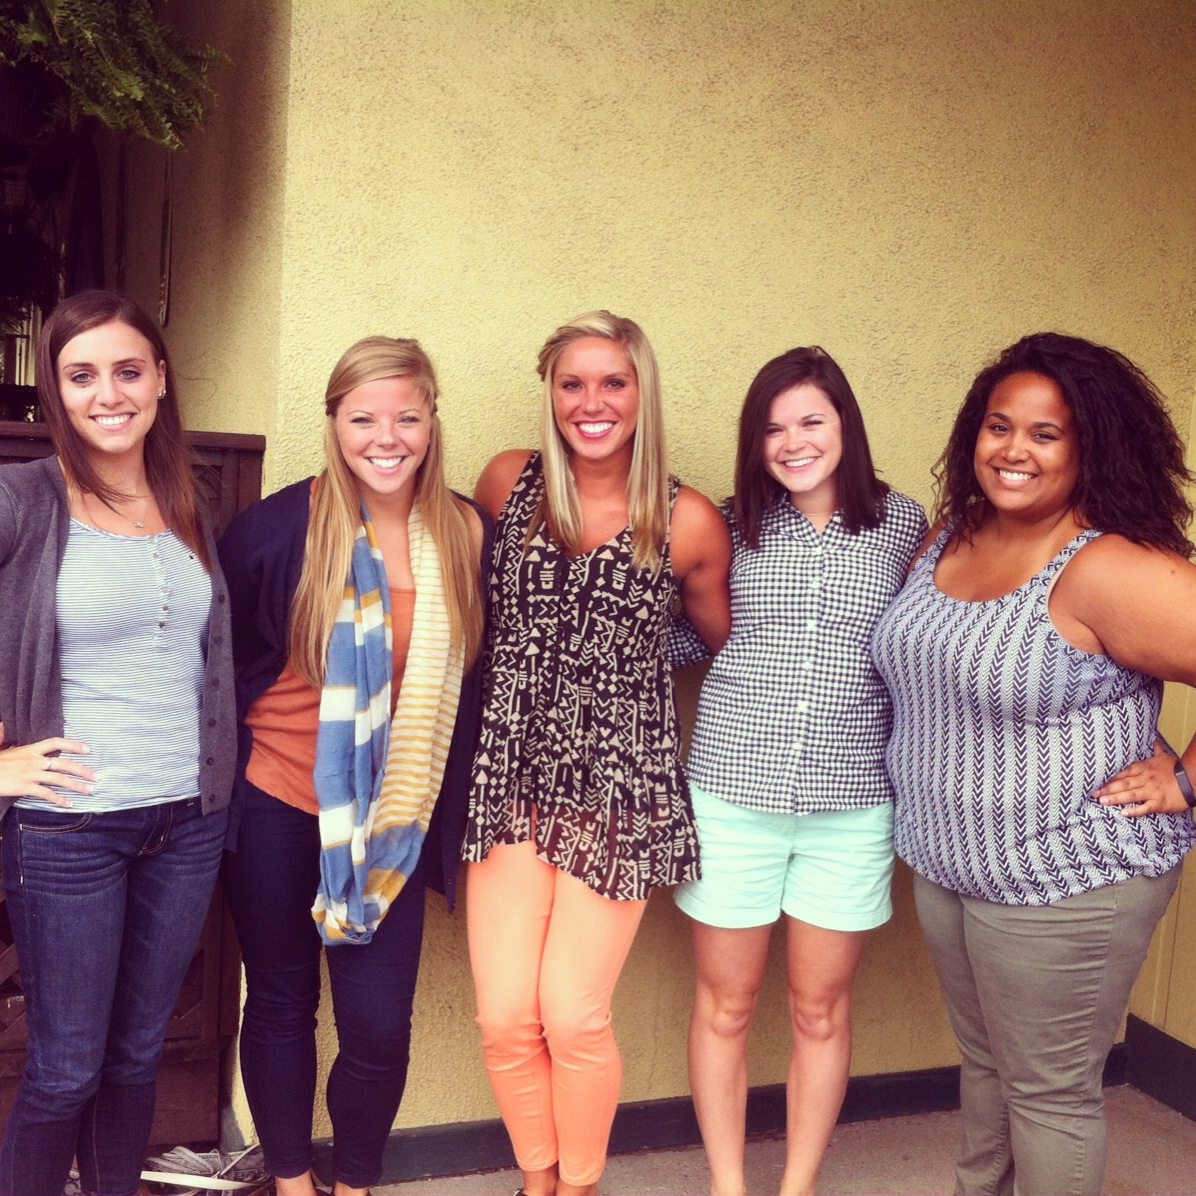 My best, best friends from high school! Just missing Kassie...it's been years since we've all been together at once.